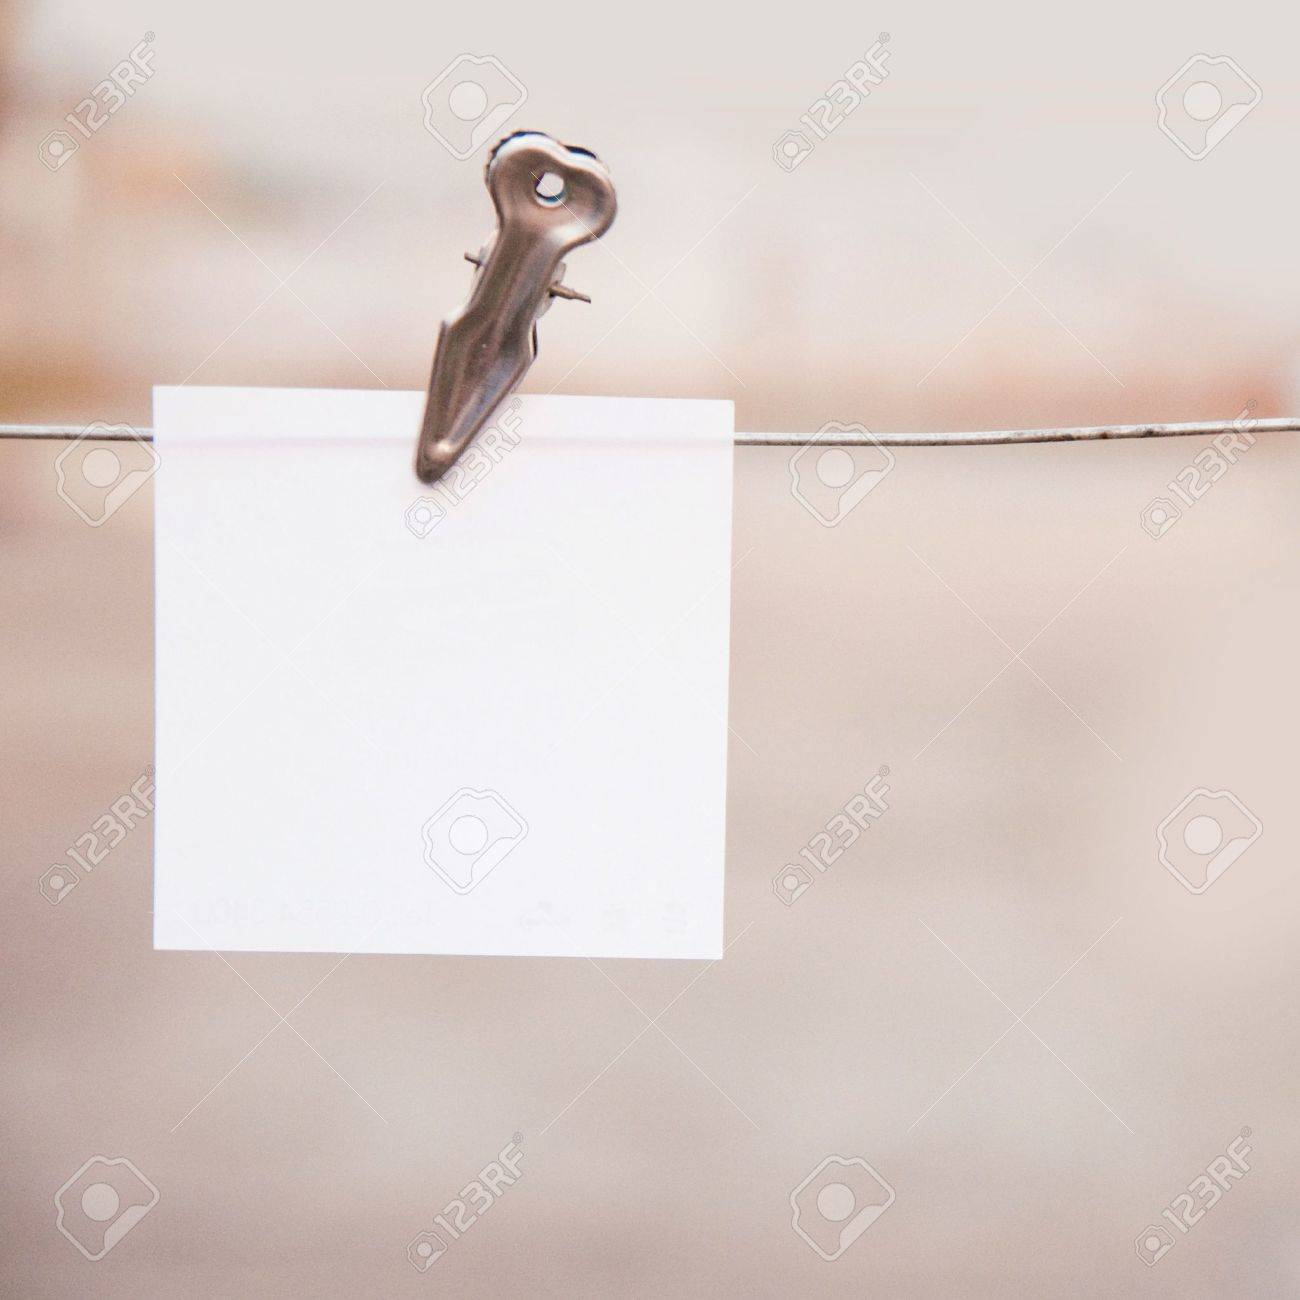 Hanging on the wire clamp. Stock Photo - 13024545